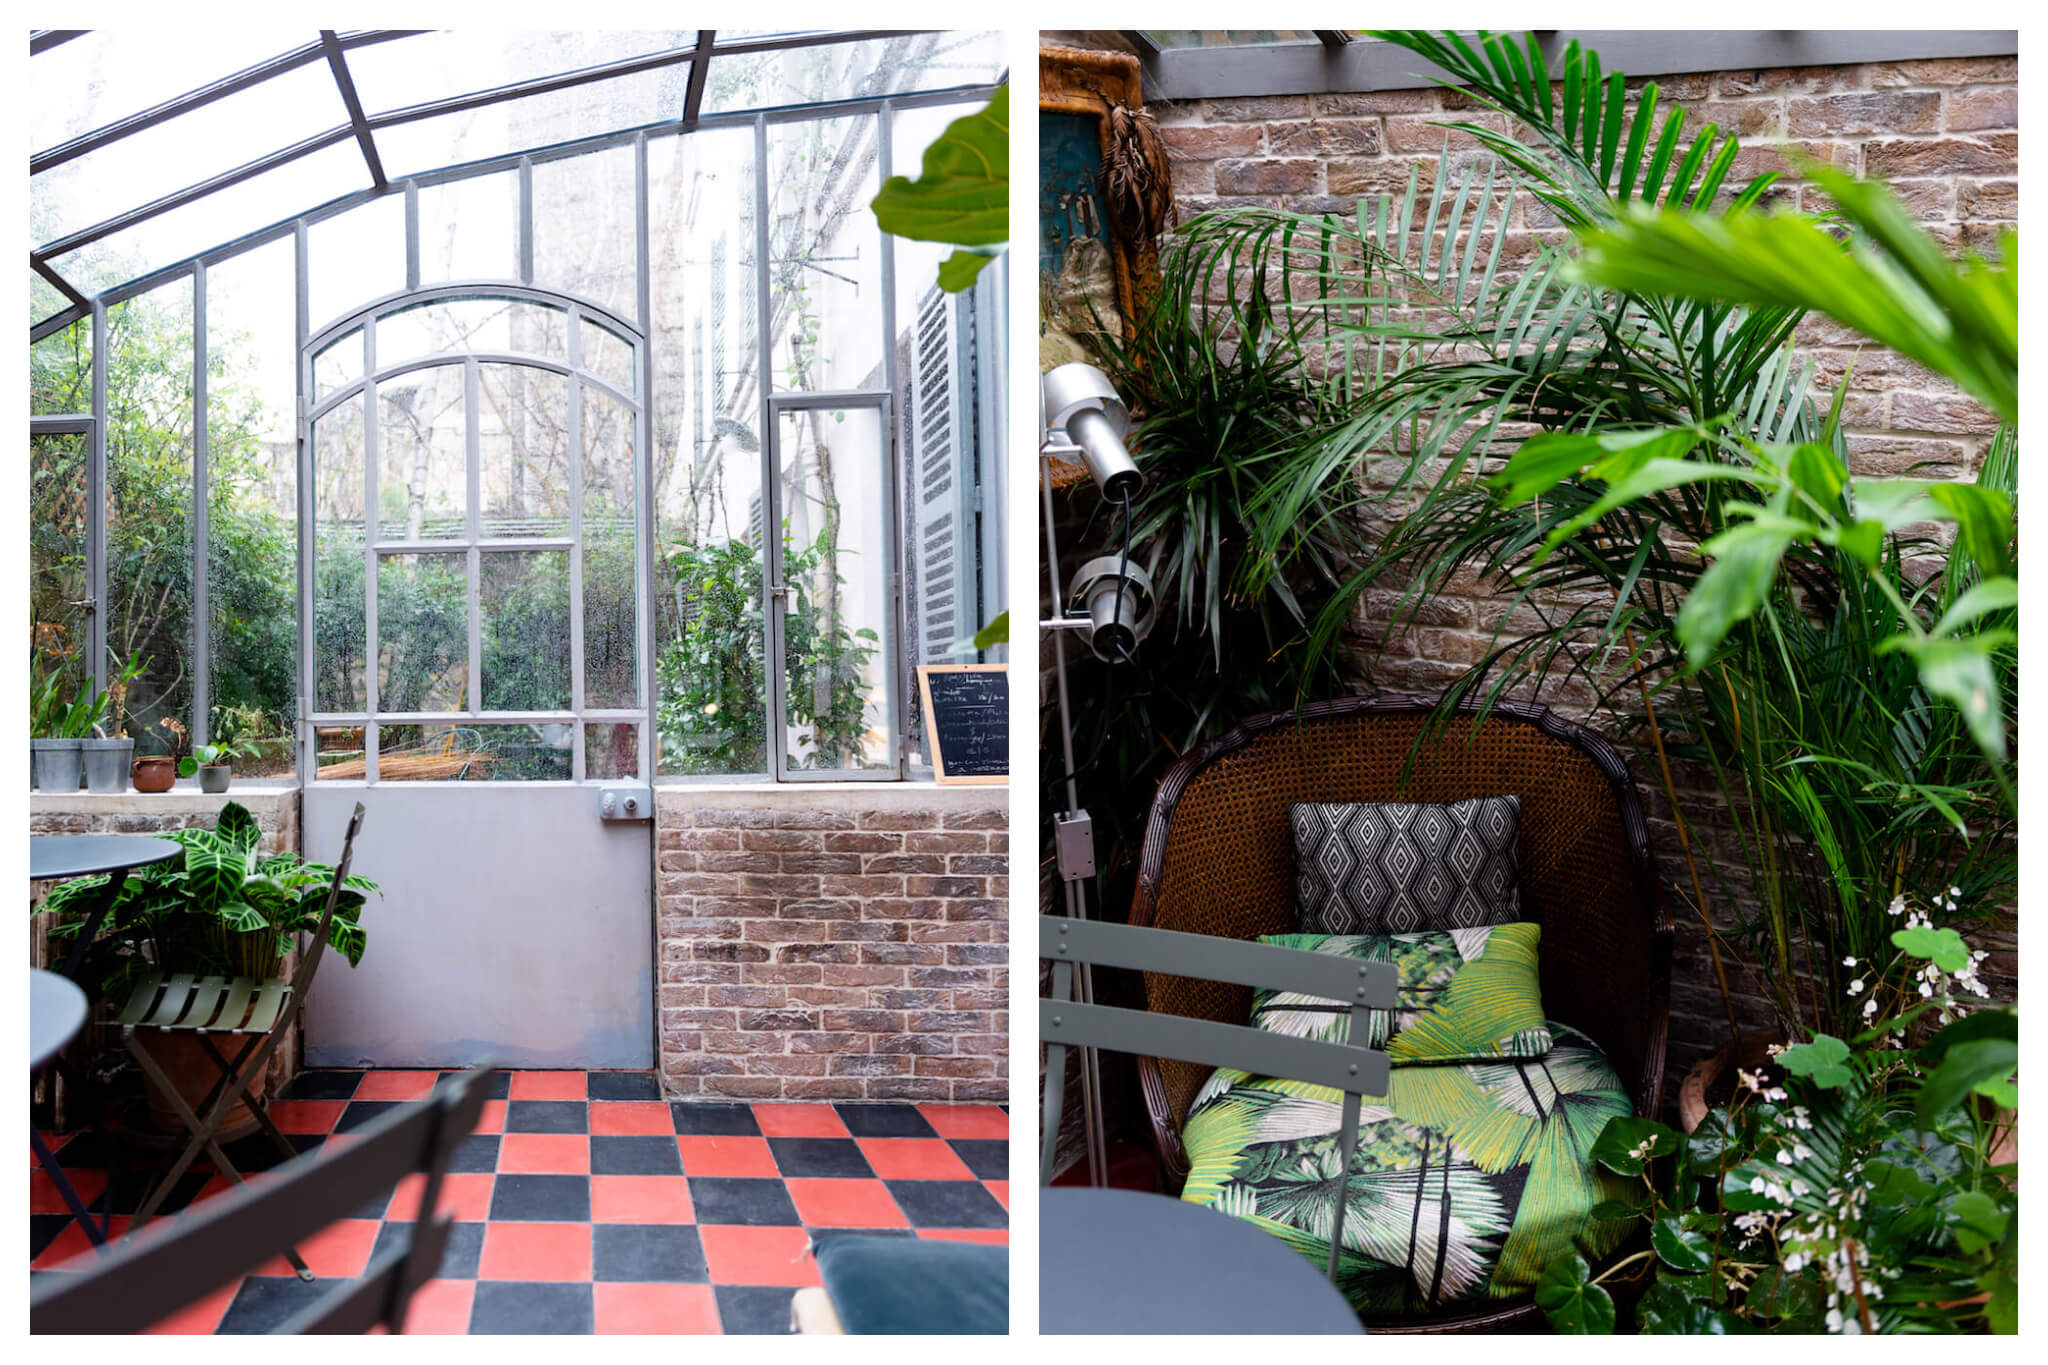 Treize au Jardin restaurant and cafe, filled with bright patterns and colorful plants.